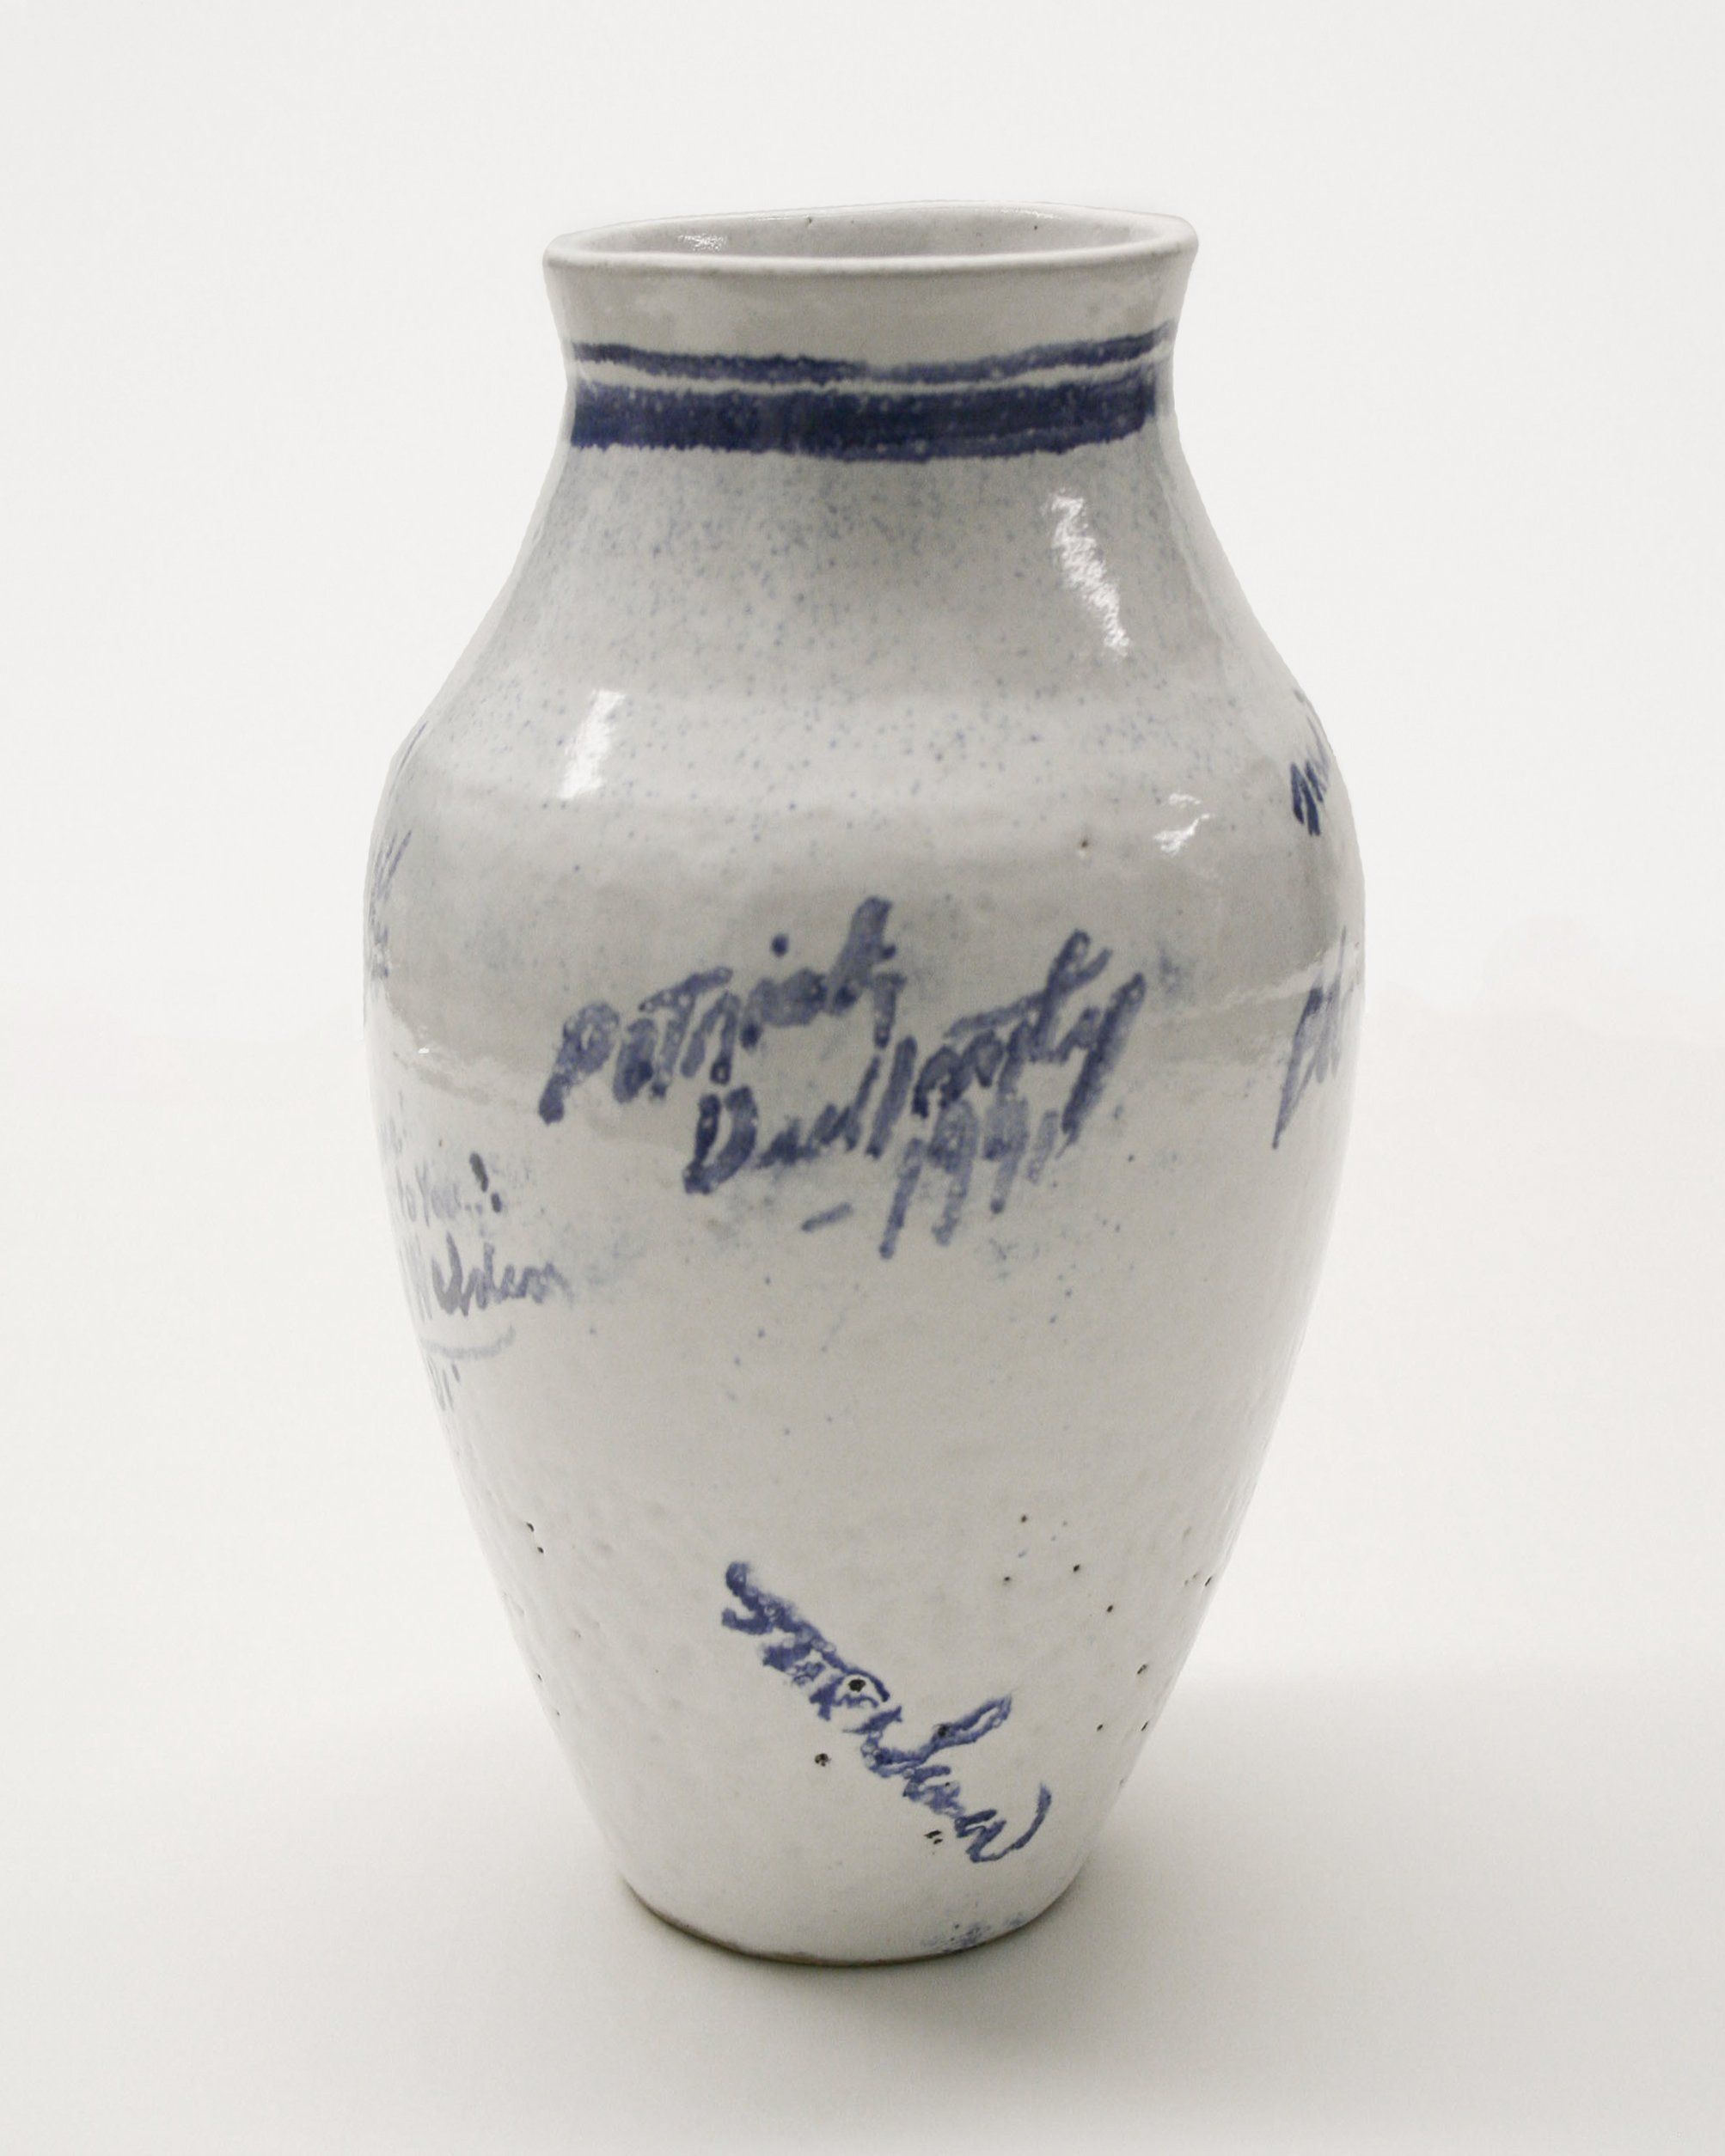 Unknown – Autographed Pot